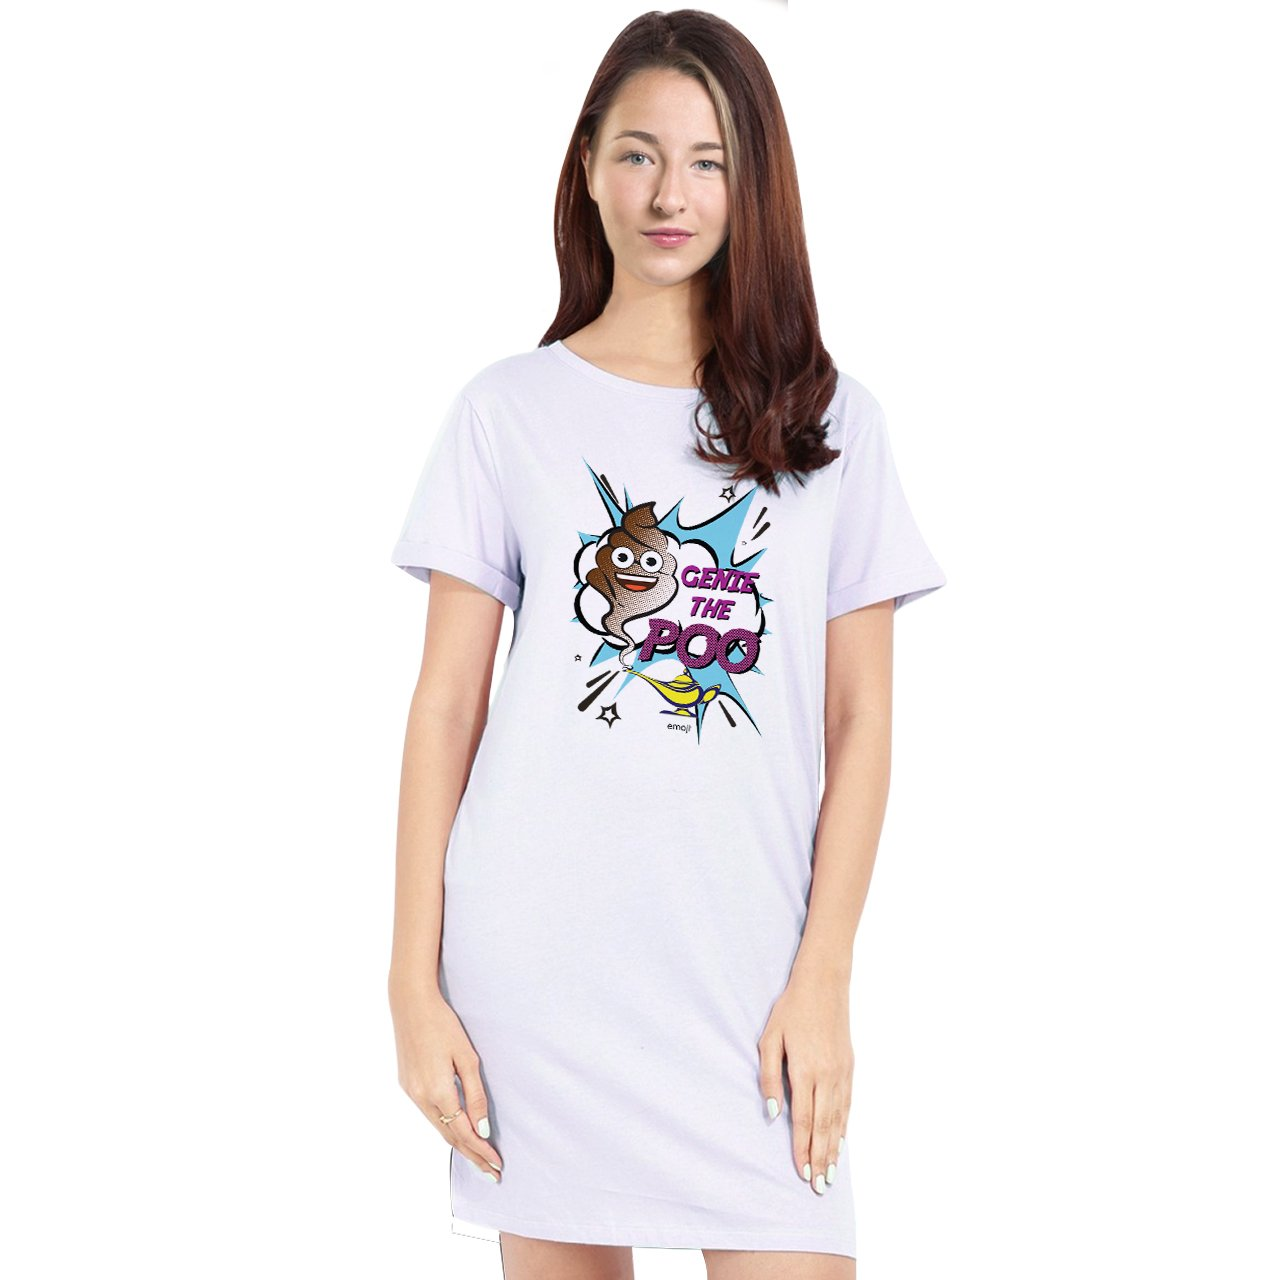 Official Licensed Emoji Printed T-Shirt Dress for Women - Genie The Poo